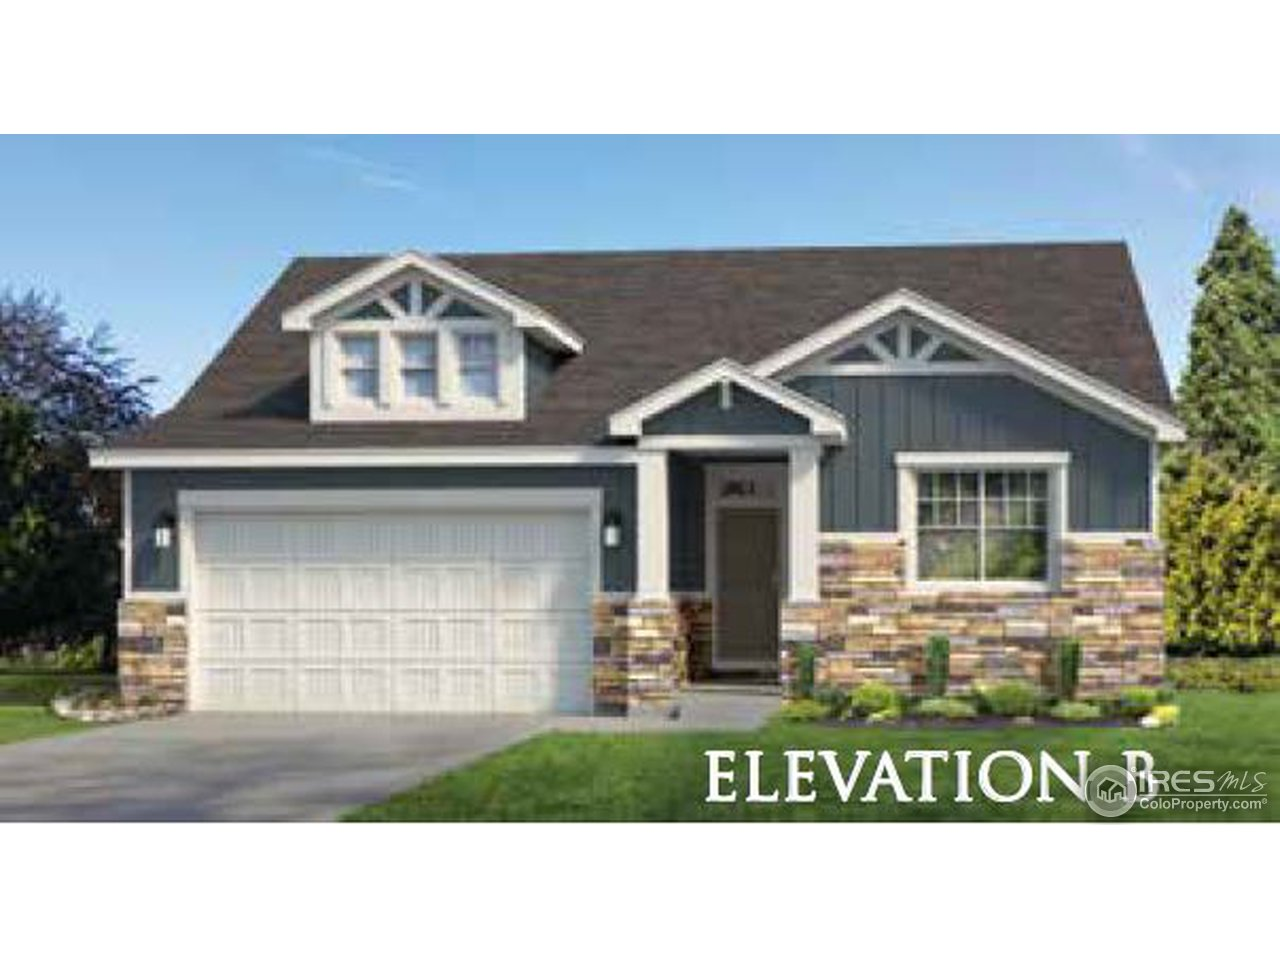 "Great opportunity to purchase a brand new Baessler Home in The Point at Promontory.  The Twain model is a modern open concept ranch plan with 3 bedrooms and great features and finishes throughout including 42"" upper cabinets in the kitchen, air conditioning, and front yard landscaping.  Home will be complete late-February, other quick delivery homes and presales available."